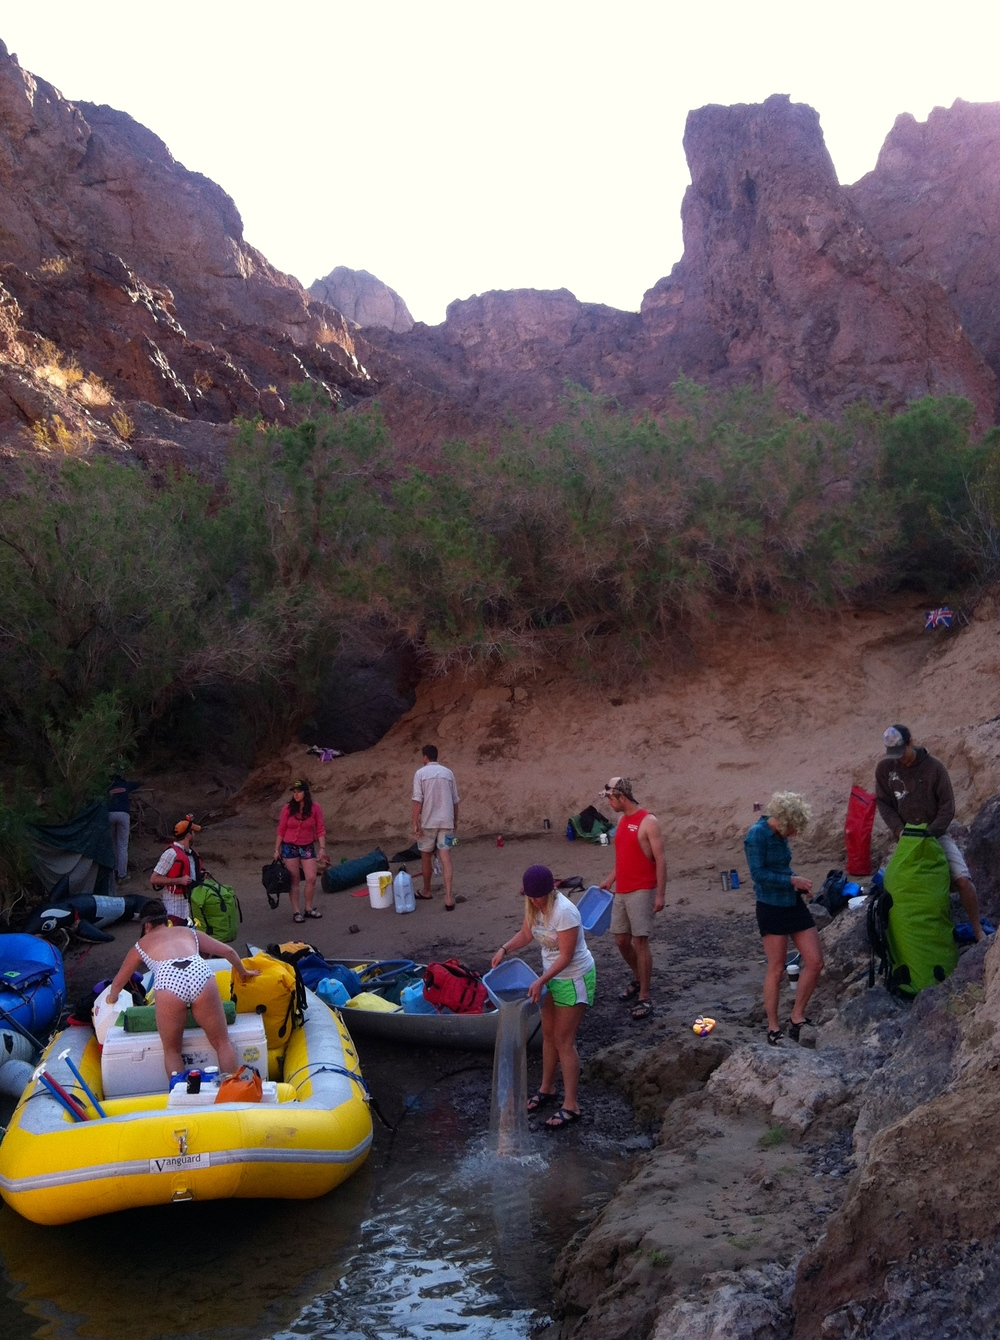 Breaking down the kitchen before we float. You definitely don't want to over pack on a river trip!